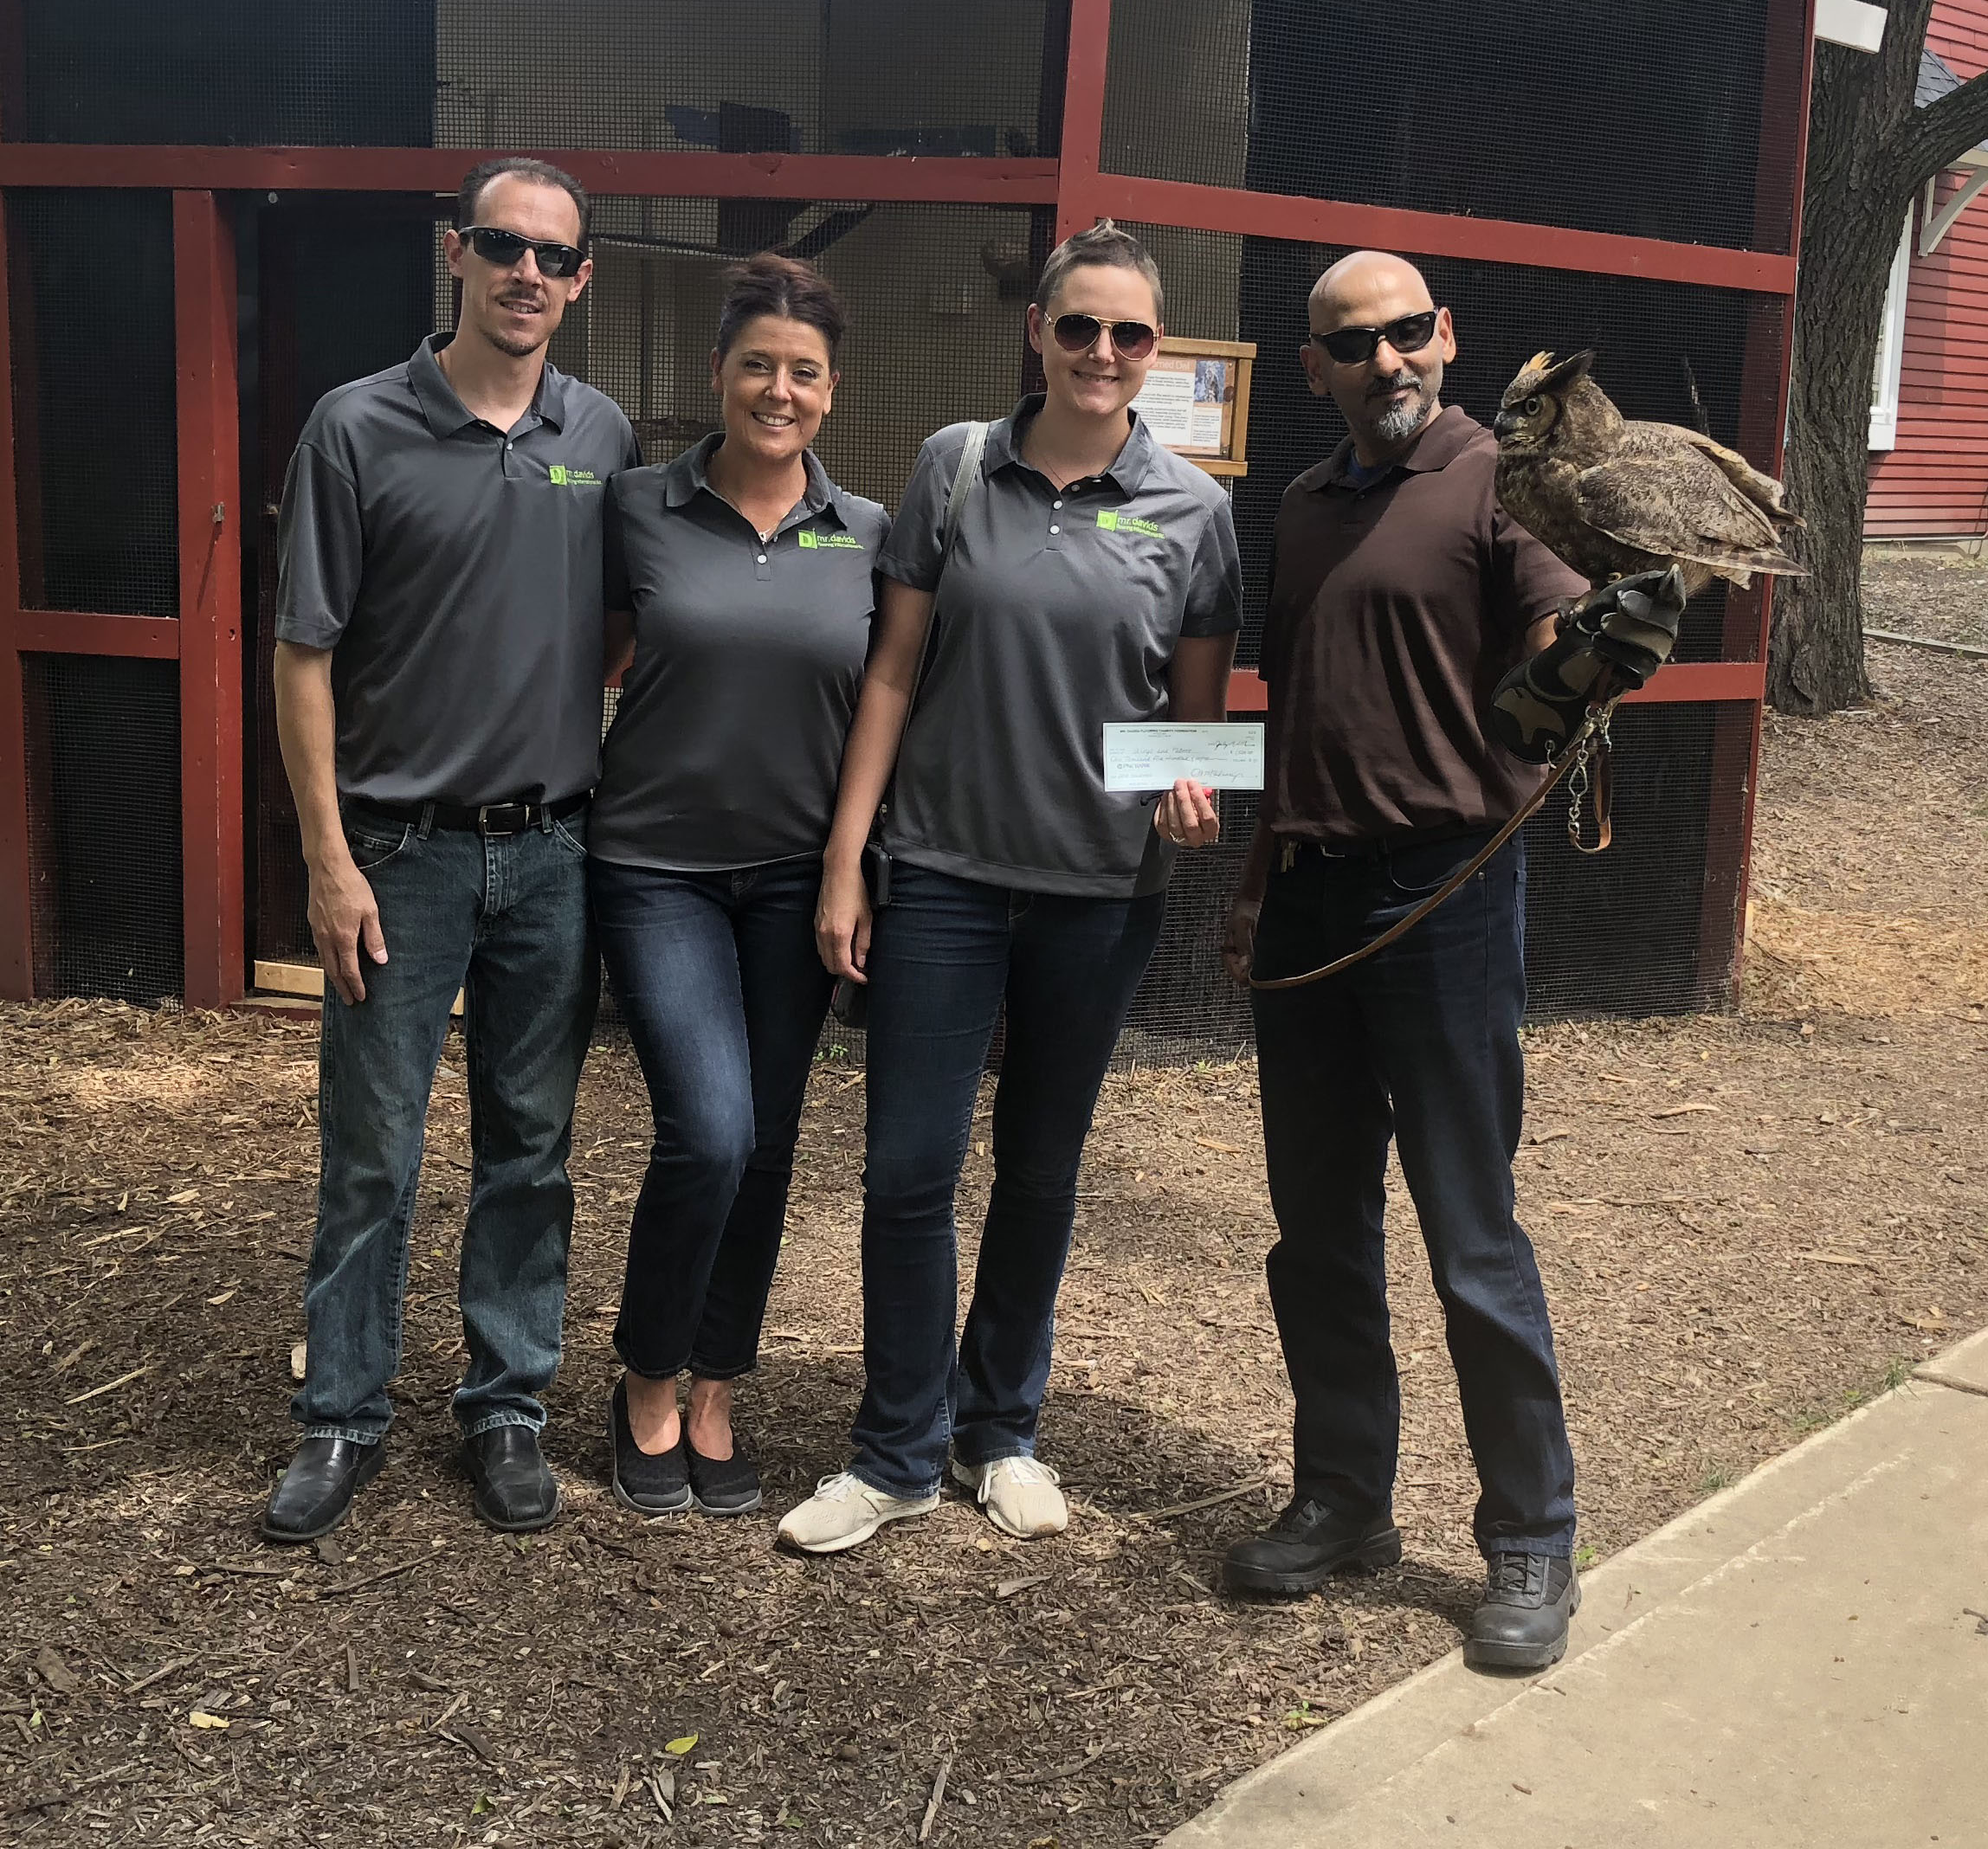 Brian Schmidt, Sherri McKinney, Kristina Russell and Nabeel Rasheed at the Wings & Talons conservatory at Springbrook Nature Center in Itasca, IL.